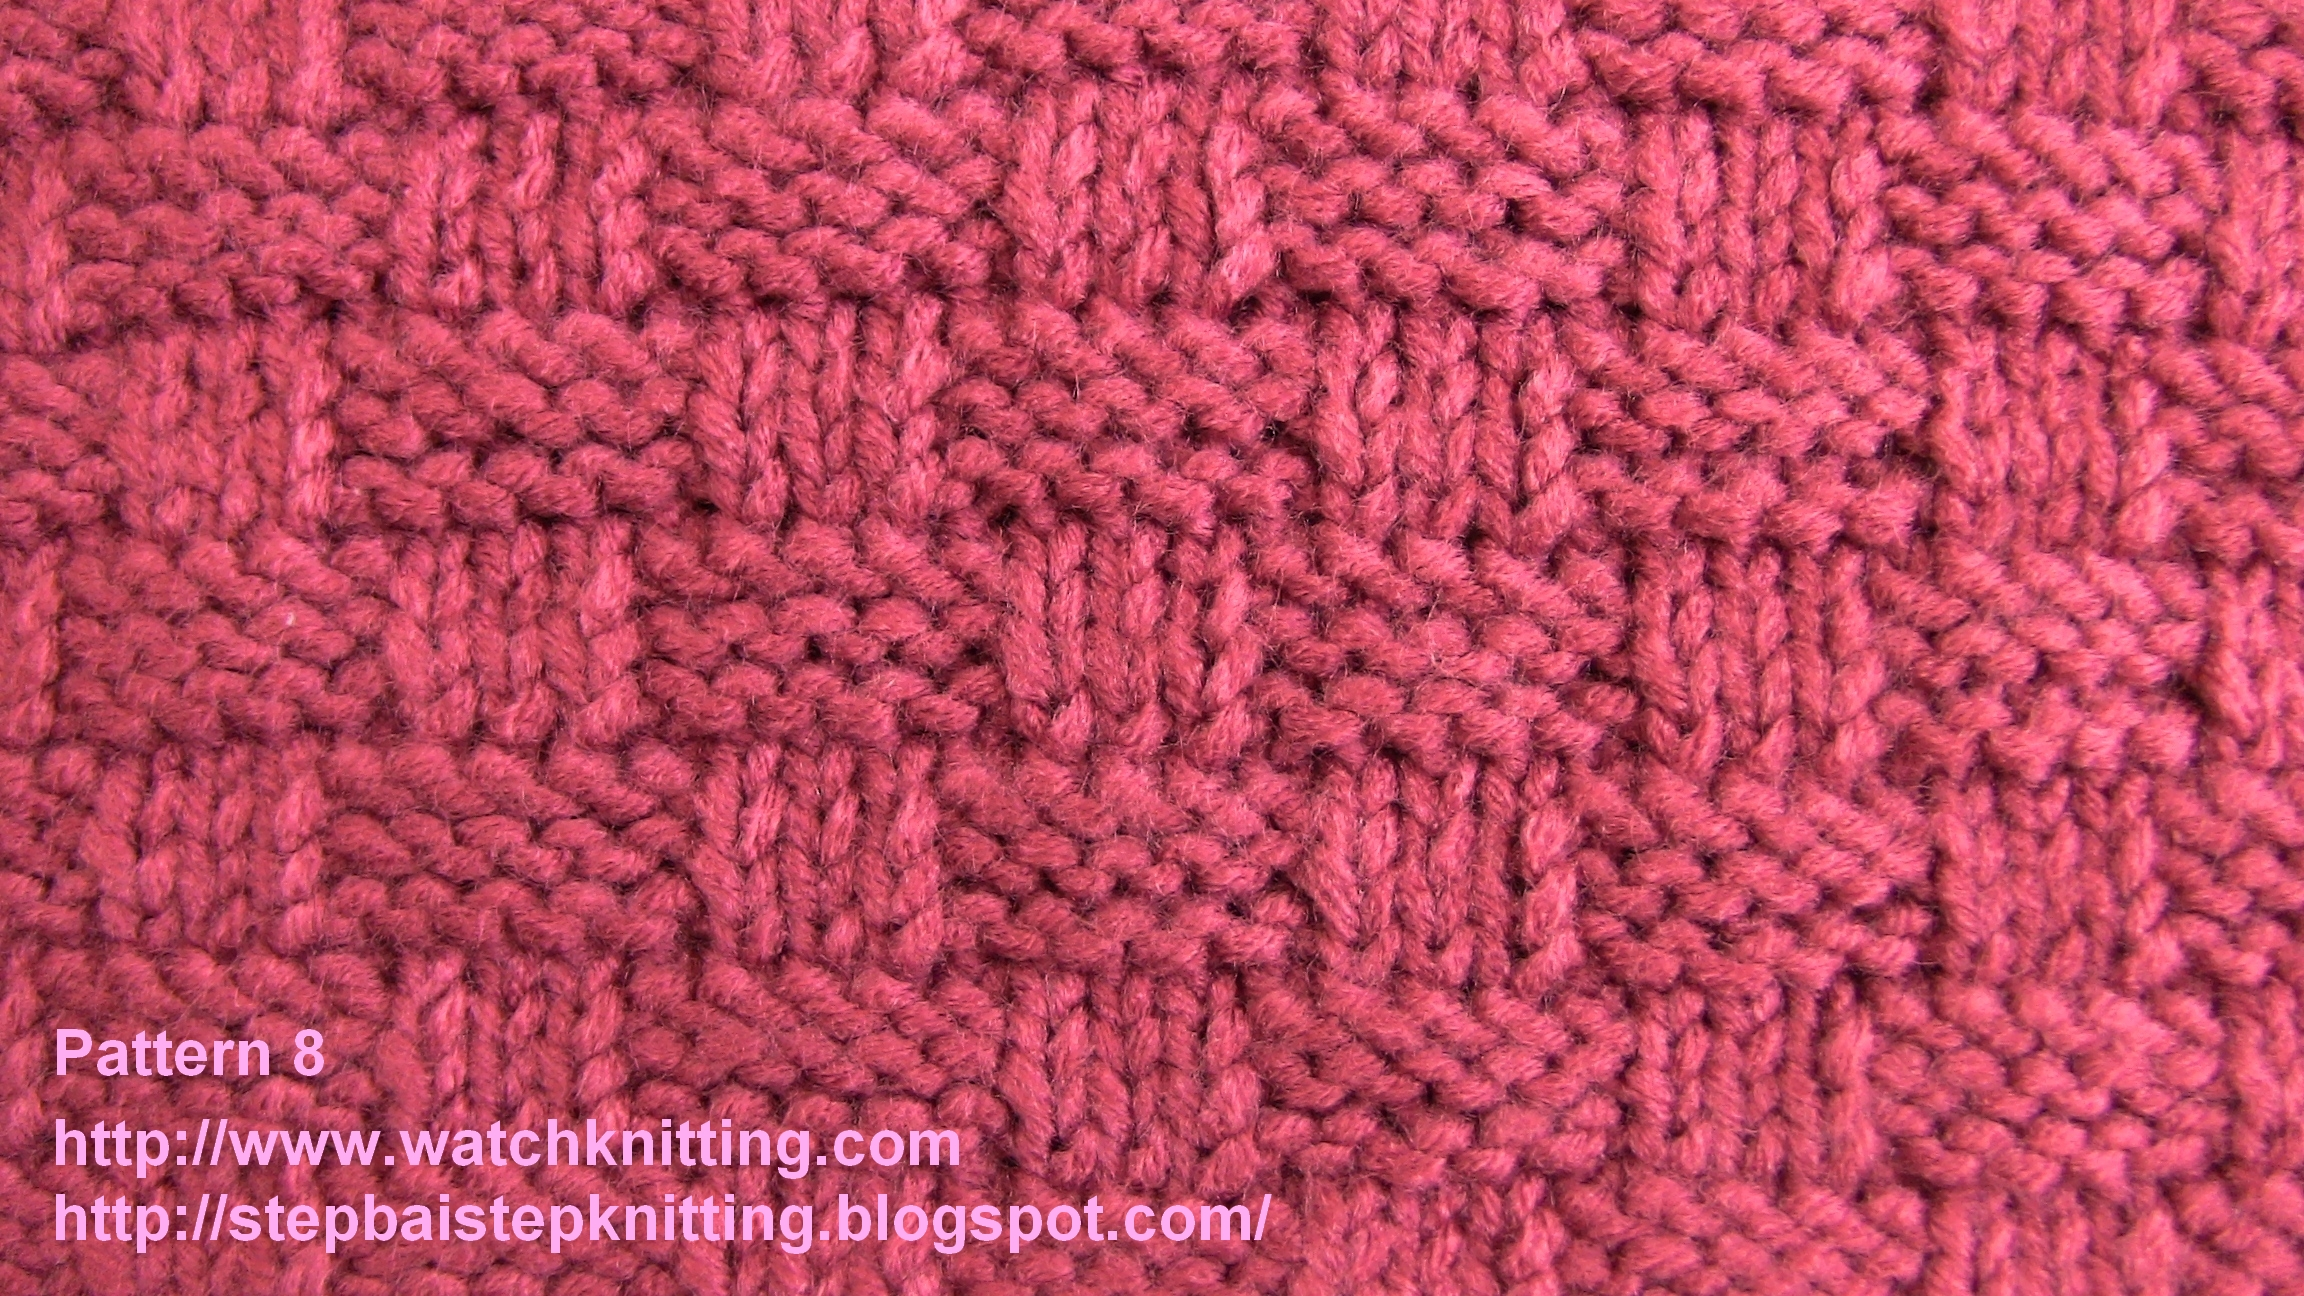 Knitting Terminology Basic Stitches : Fancy Knitting Stitches images